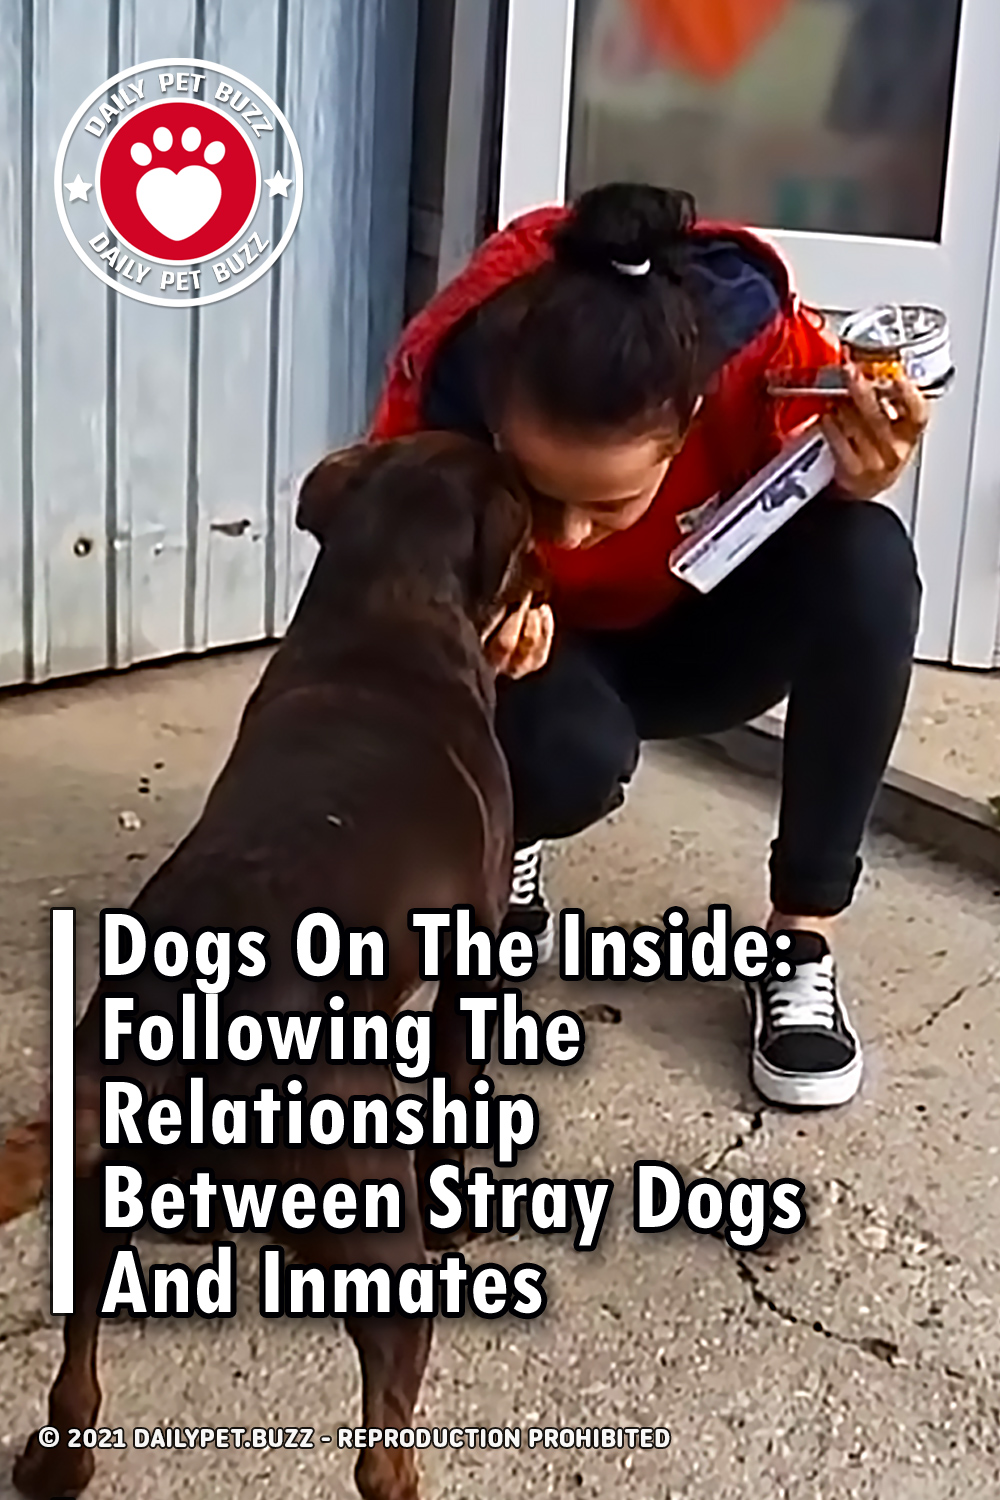 Dogs On The Inside: Following The Relationship Between Stray Dogs And Inmates